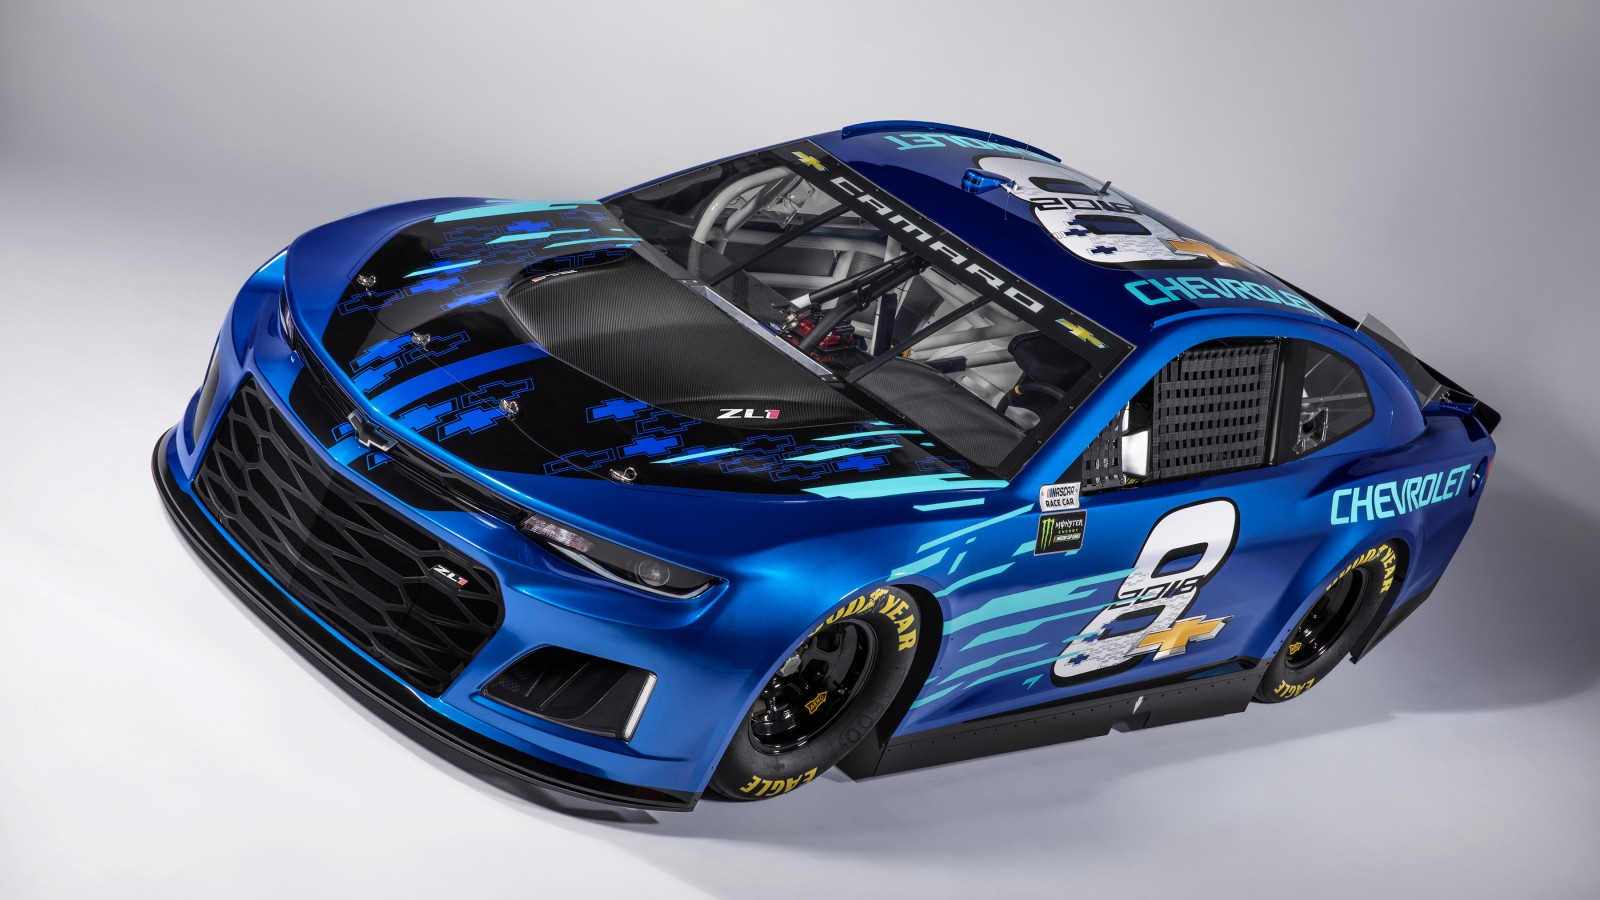 Chevrolet Camaro Zl1 Nascar Race Car 2018 Wallpaper Hd